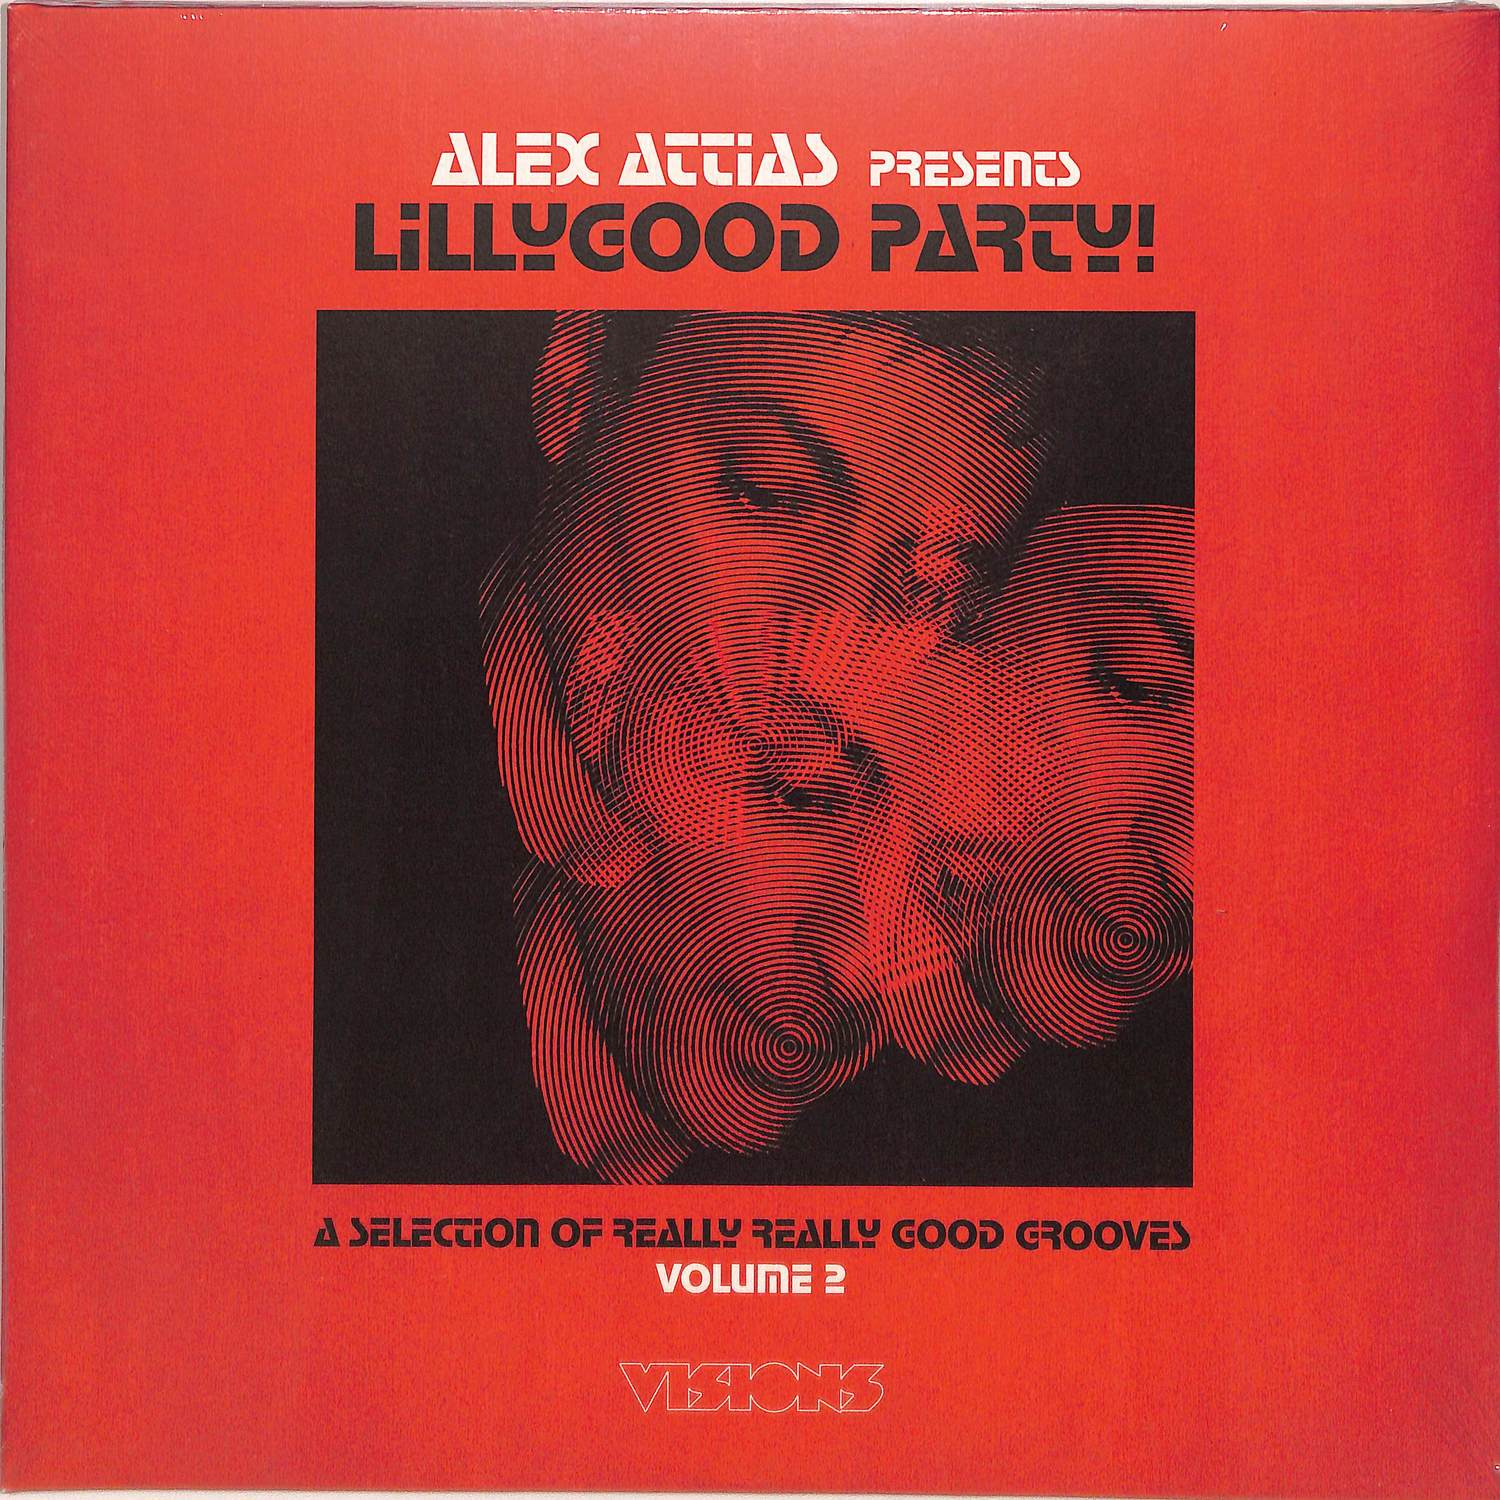 Alex Attias - LILLYGOOD PARTY! VOL. 2